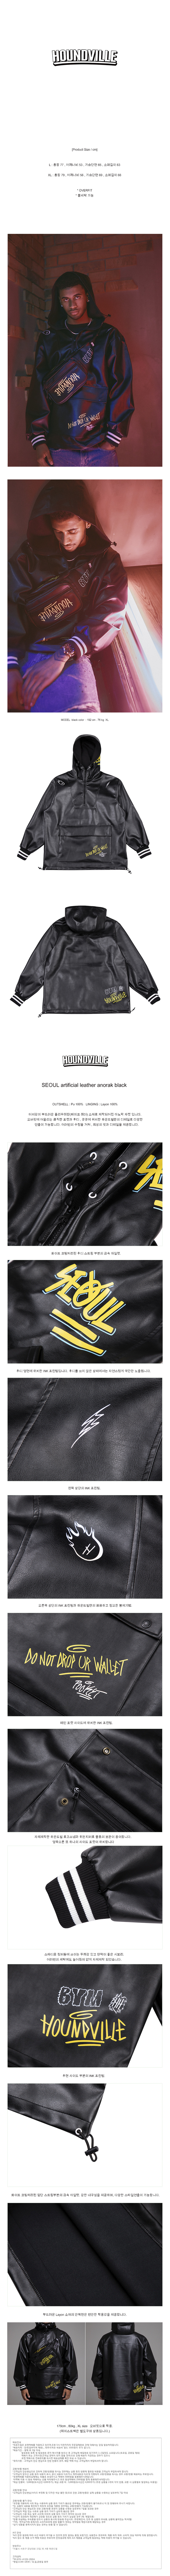 SEOUL artificial leather anorak black low.jpg